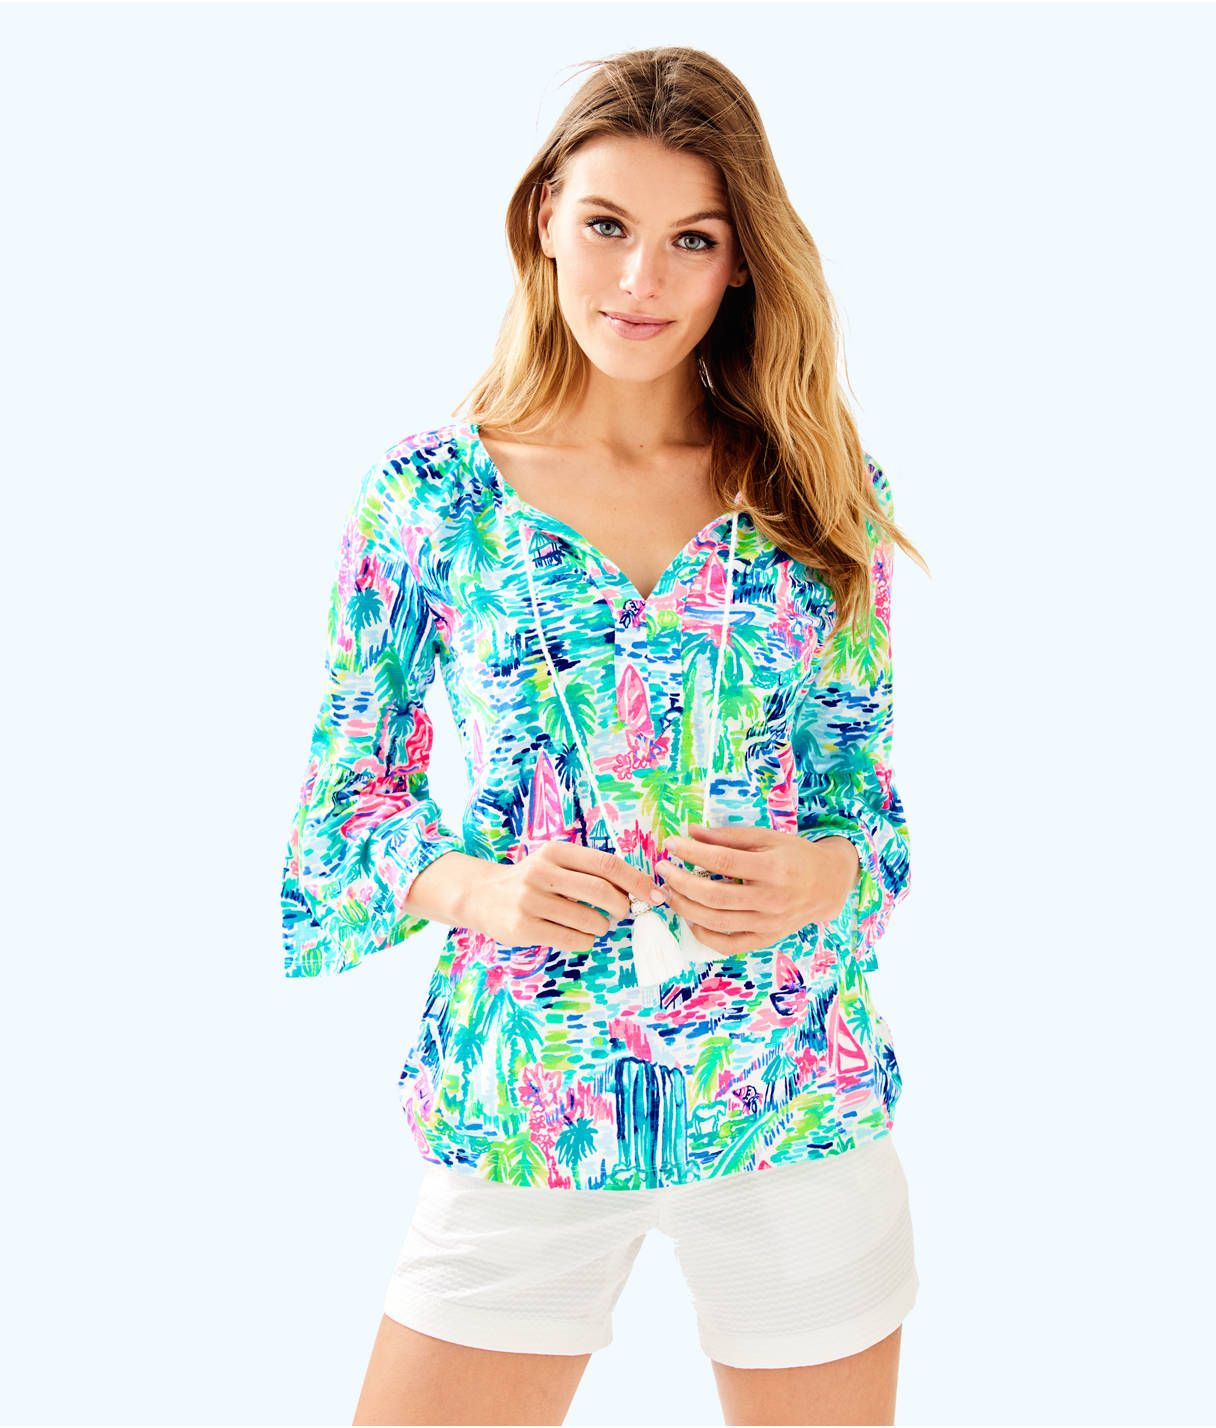 8aa5ad8ea06abe Del Lago Tunic, Multi Salt In The Air, large Lilly Pulitzer Prints, Lily